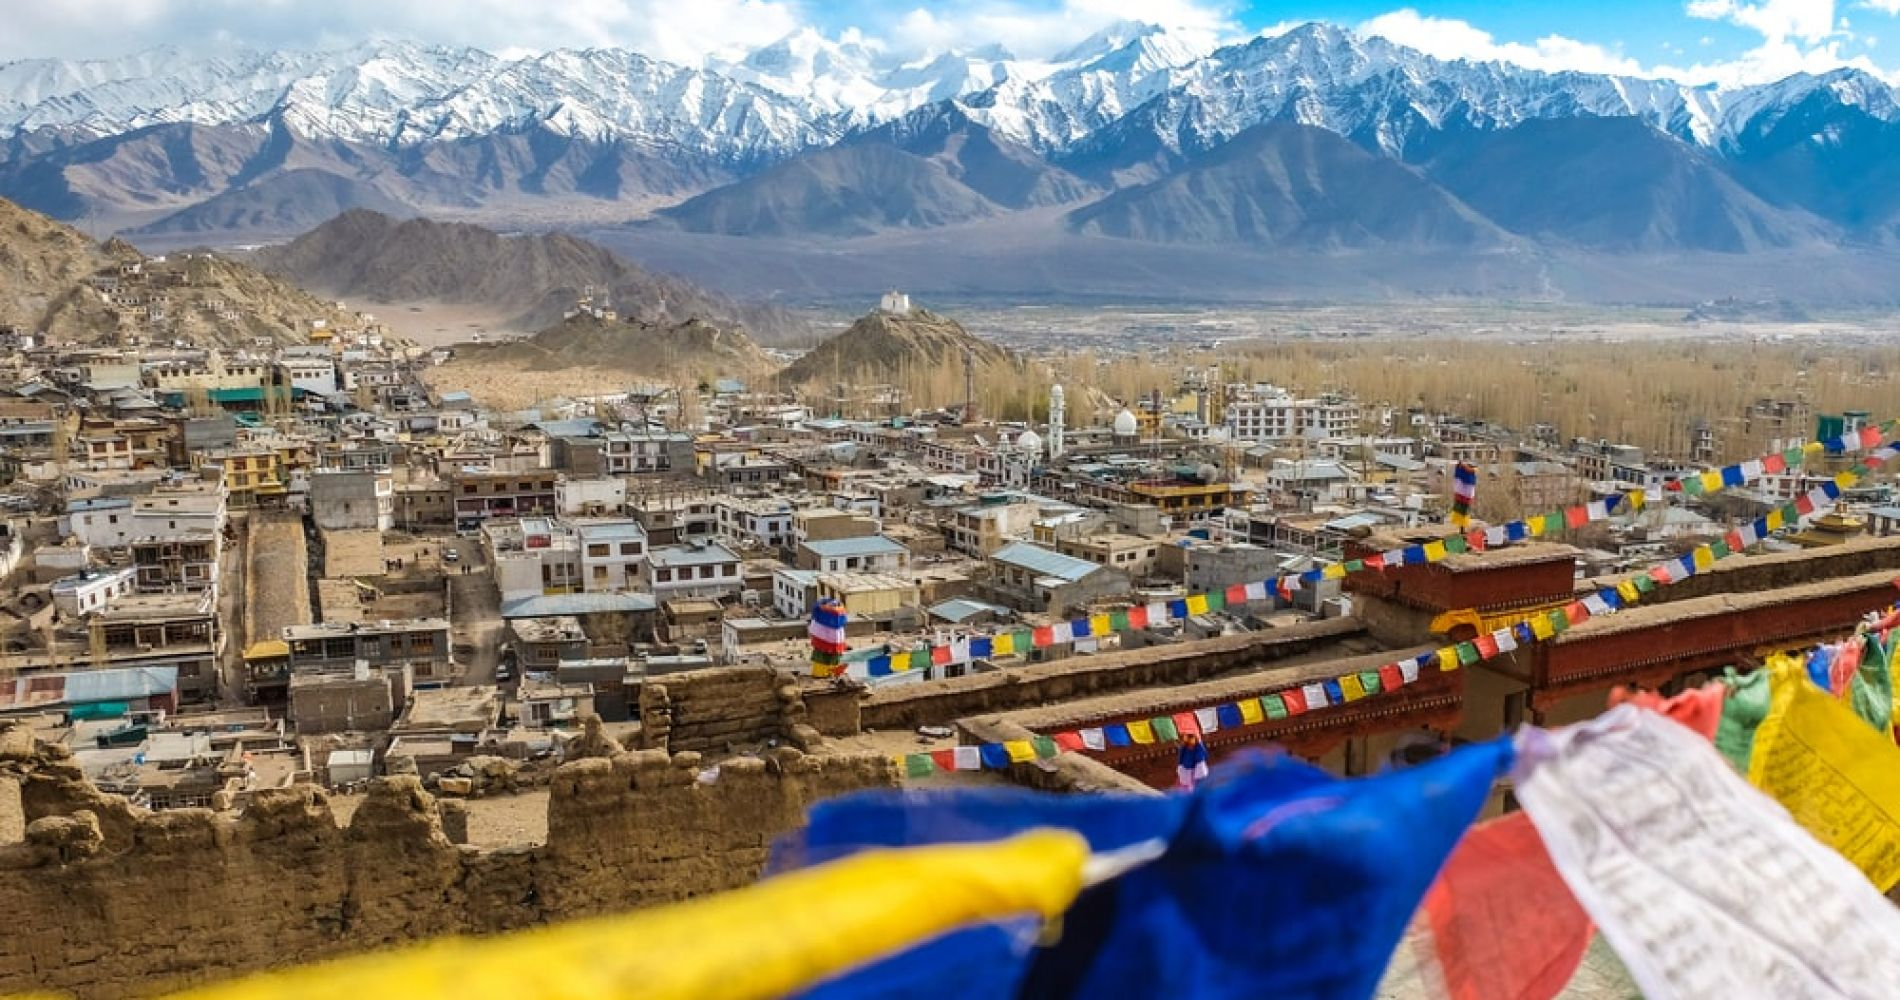 Soak up the spirit of the Himalayas in Leh, India